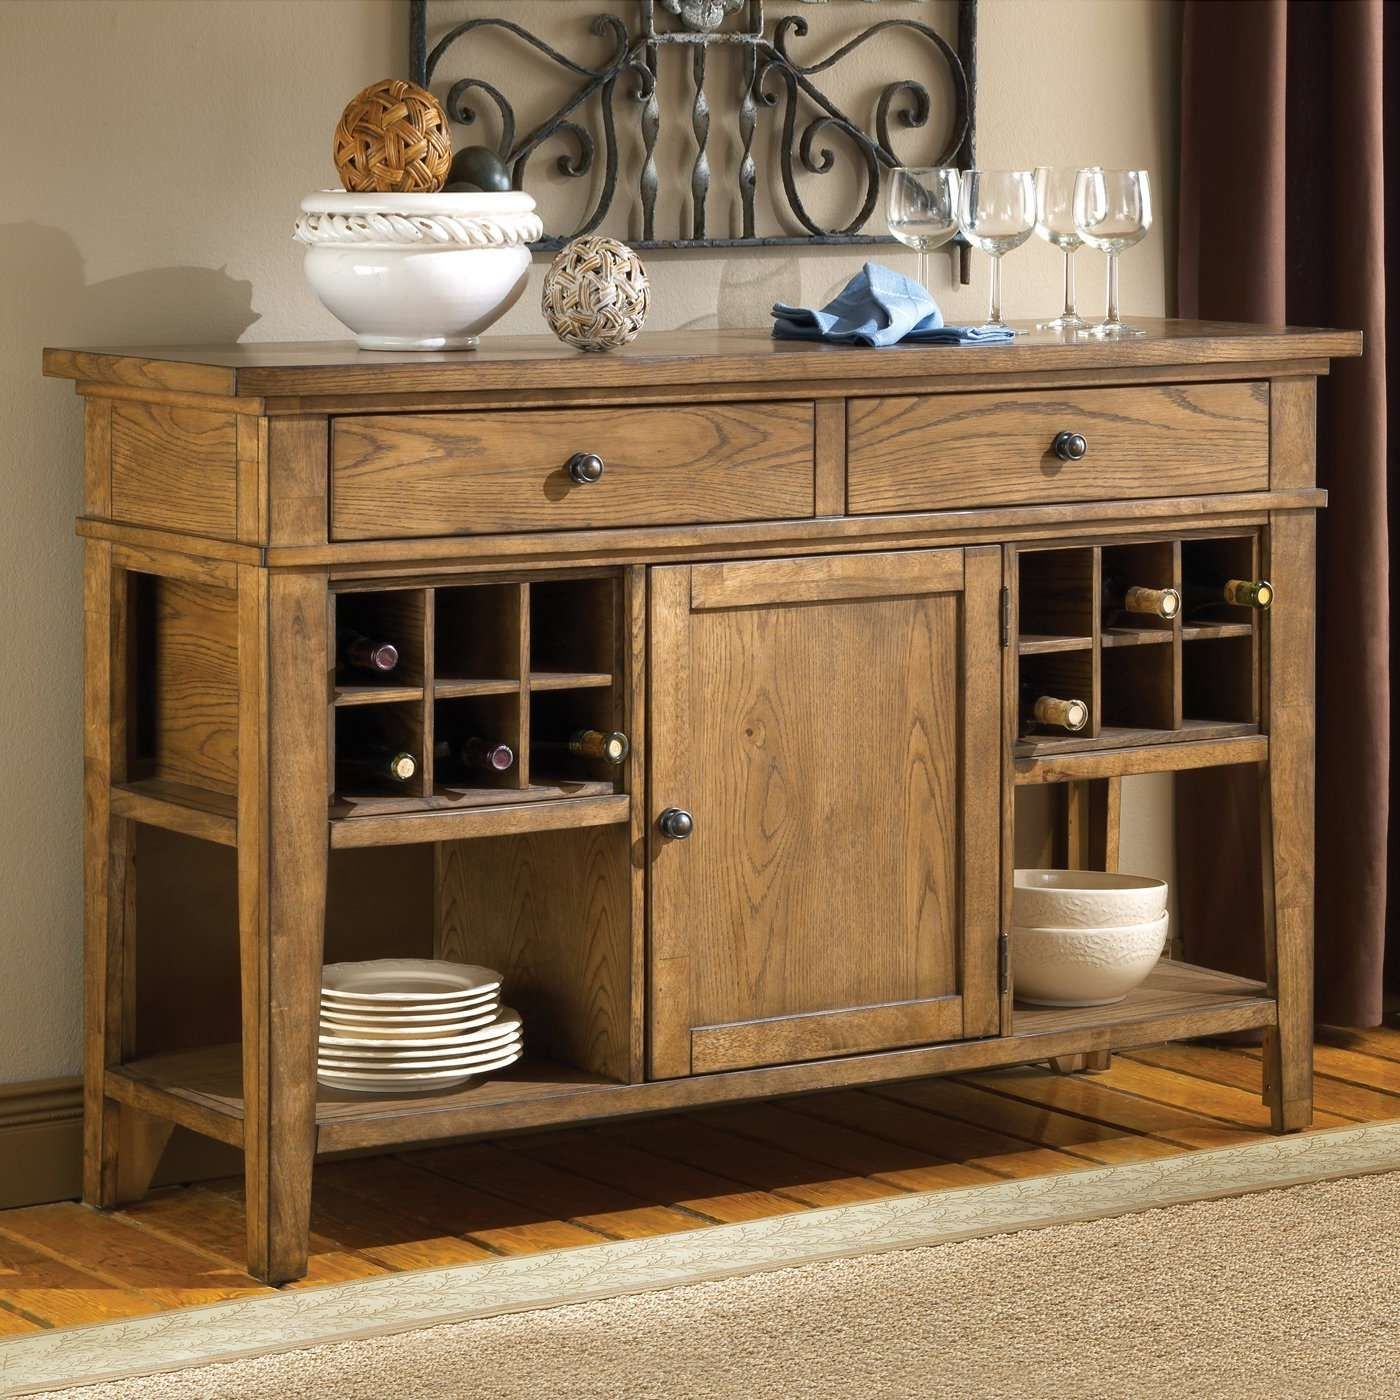 Traditional Dining Room Sideboards And Buffets : Rustic Dining Regarding Rustic Sideboards And Buffets (View 20 of 20)